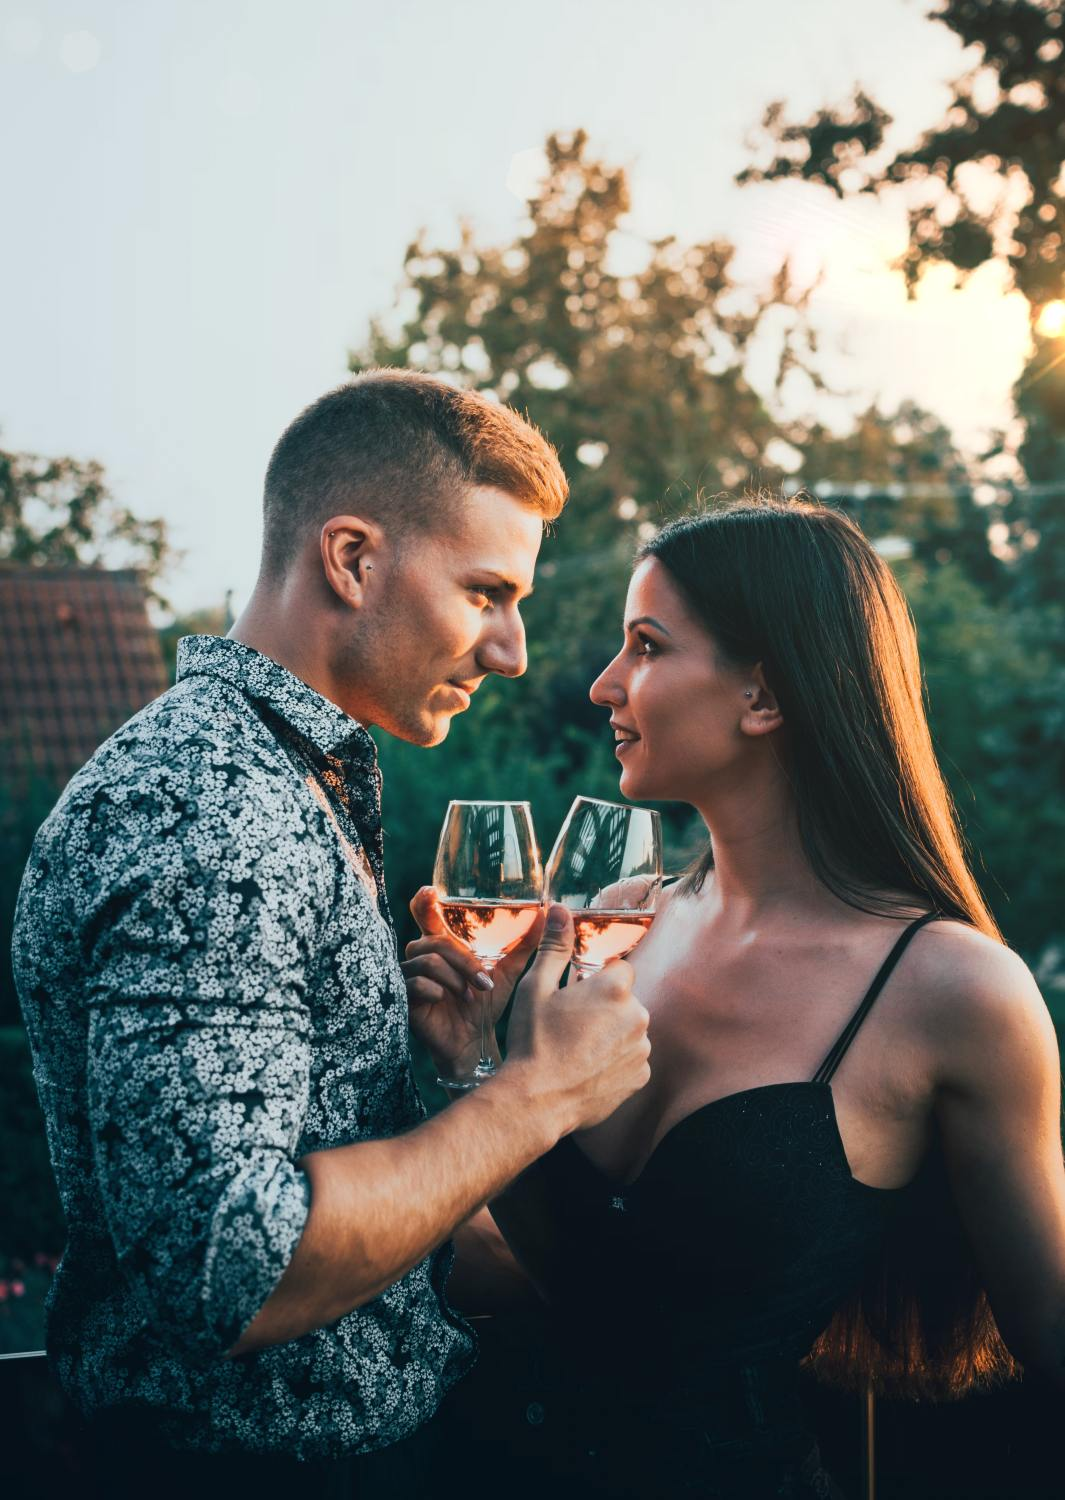 Dating Someone With HSV-1 (Herpes): Is It A Good Idea?